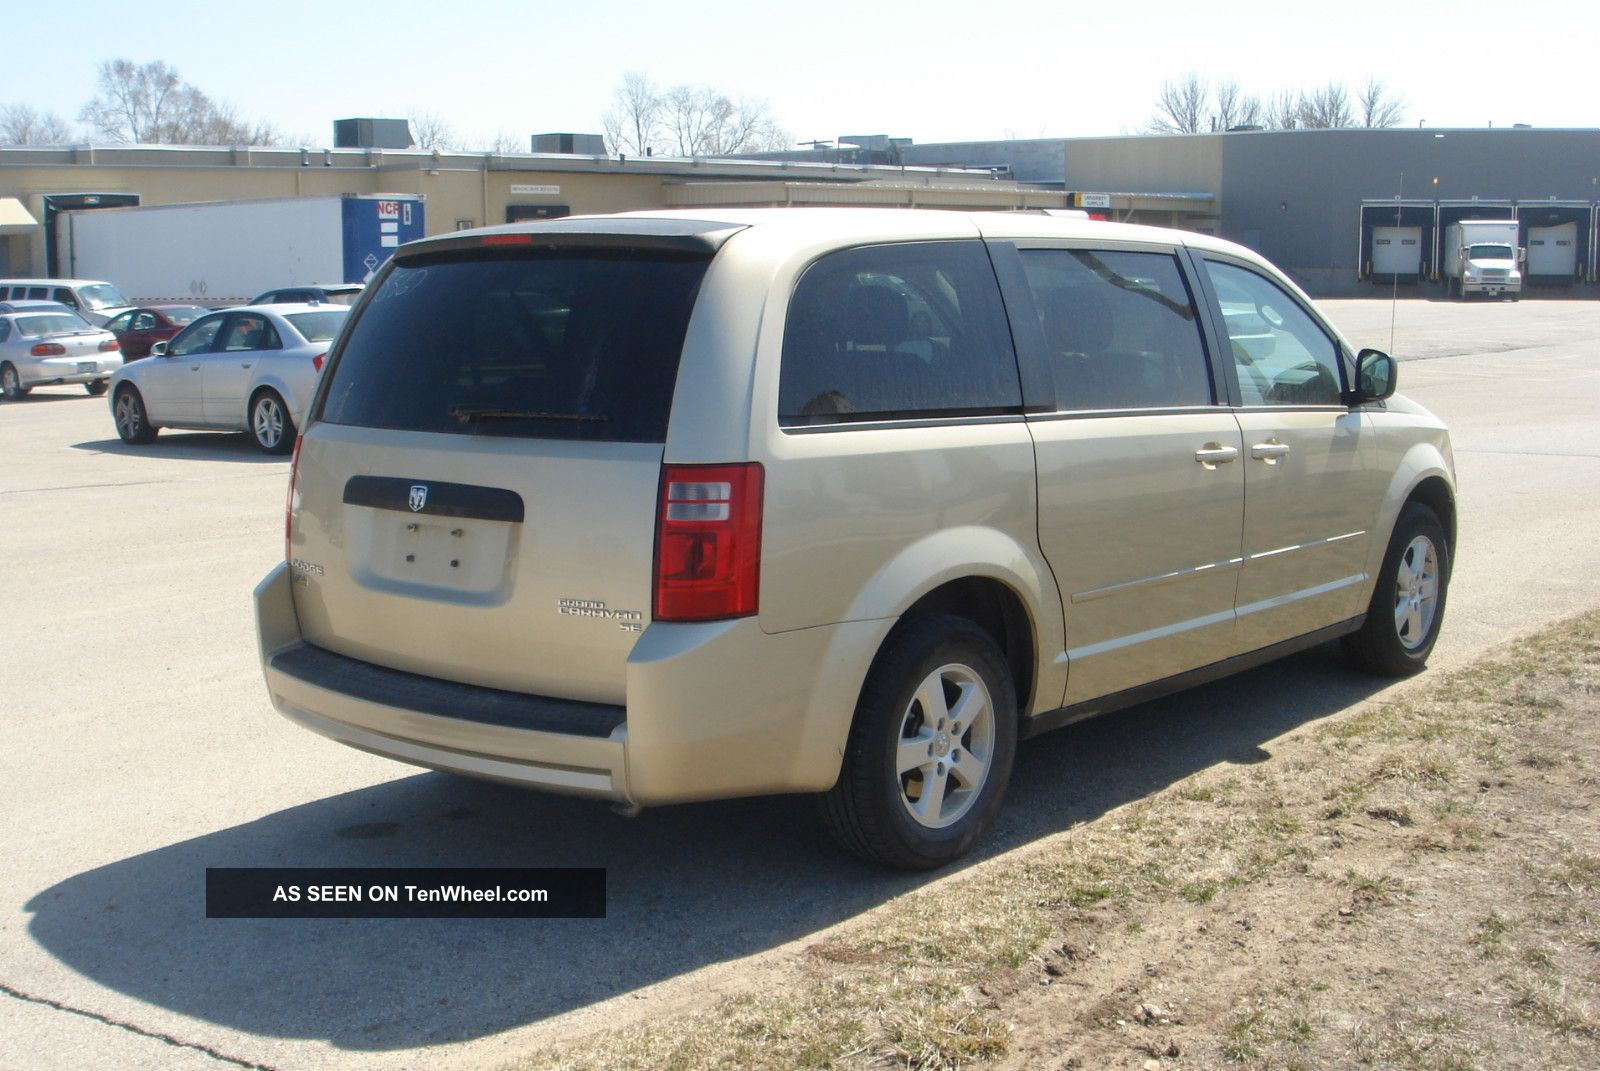 19091 2010 dodge grand caravan se as well Wiring Color Code For A Trailer For A Chevy 2015 Colorado besides Cambio furthermore Showthread further 2014 Volkswagen Tiguan Review And Road Test 123322. on 2012 volkswagen routan